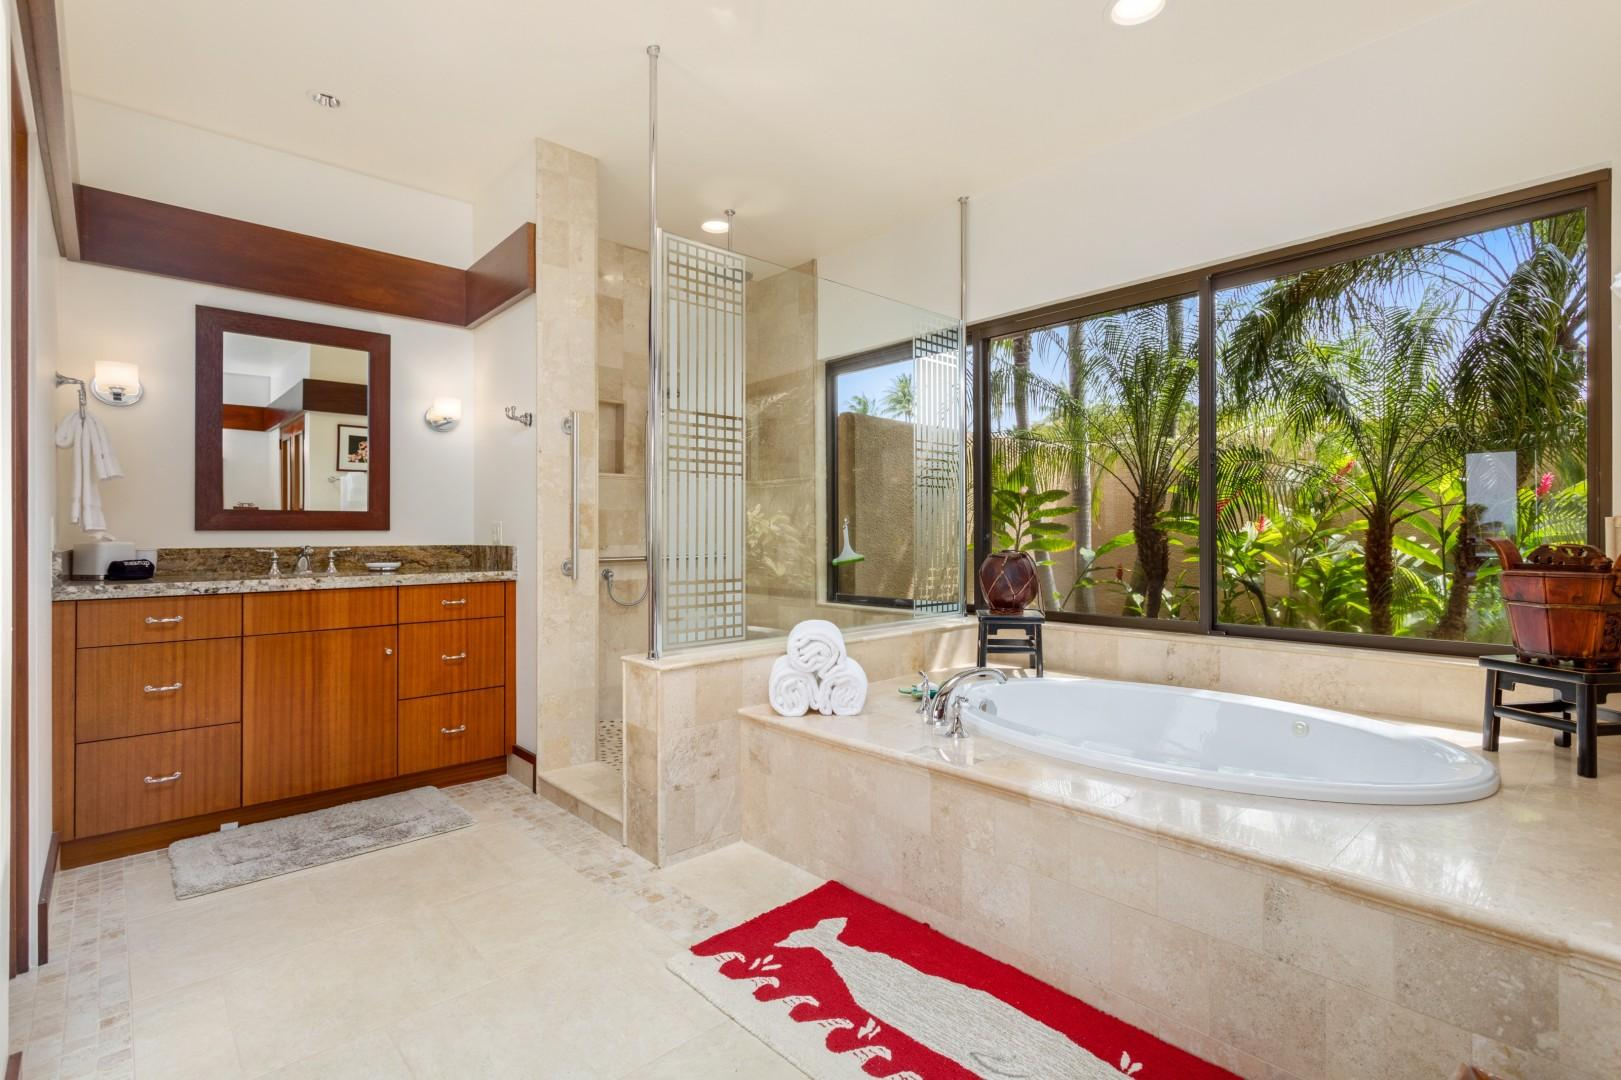 Master bathroom alternate view, featuring walk-in shower and views to lush tropical landscaping.